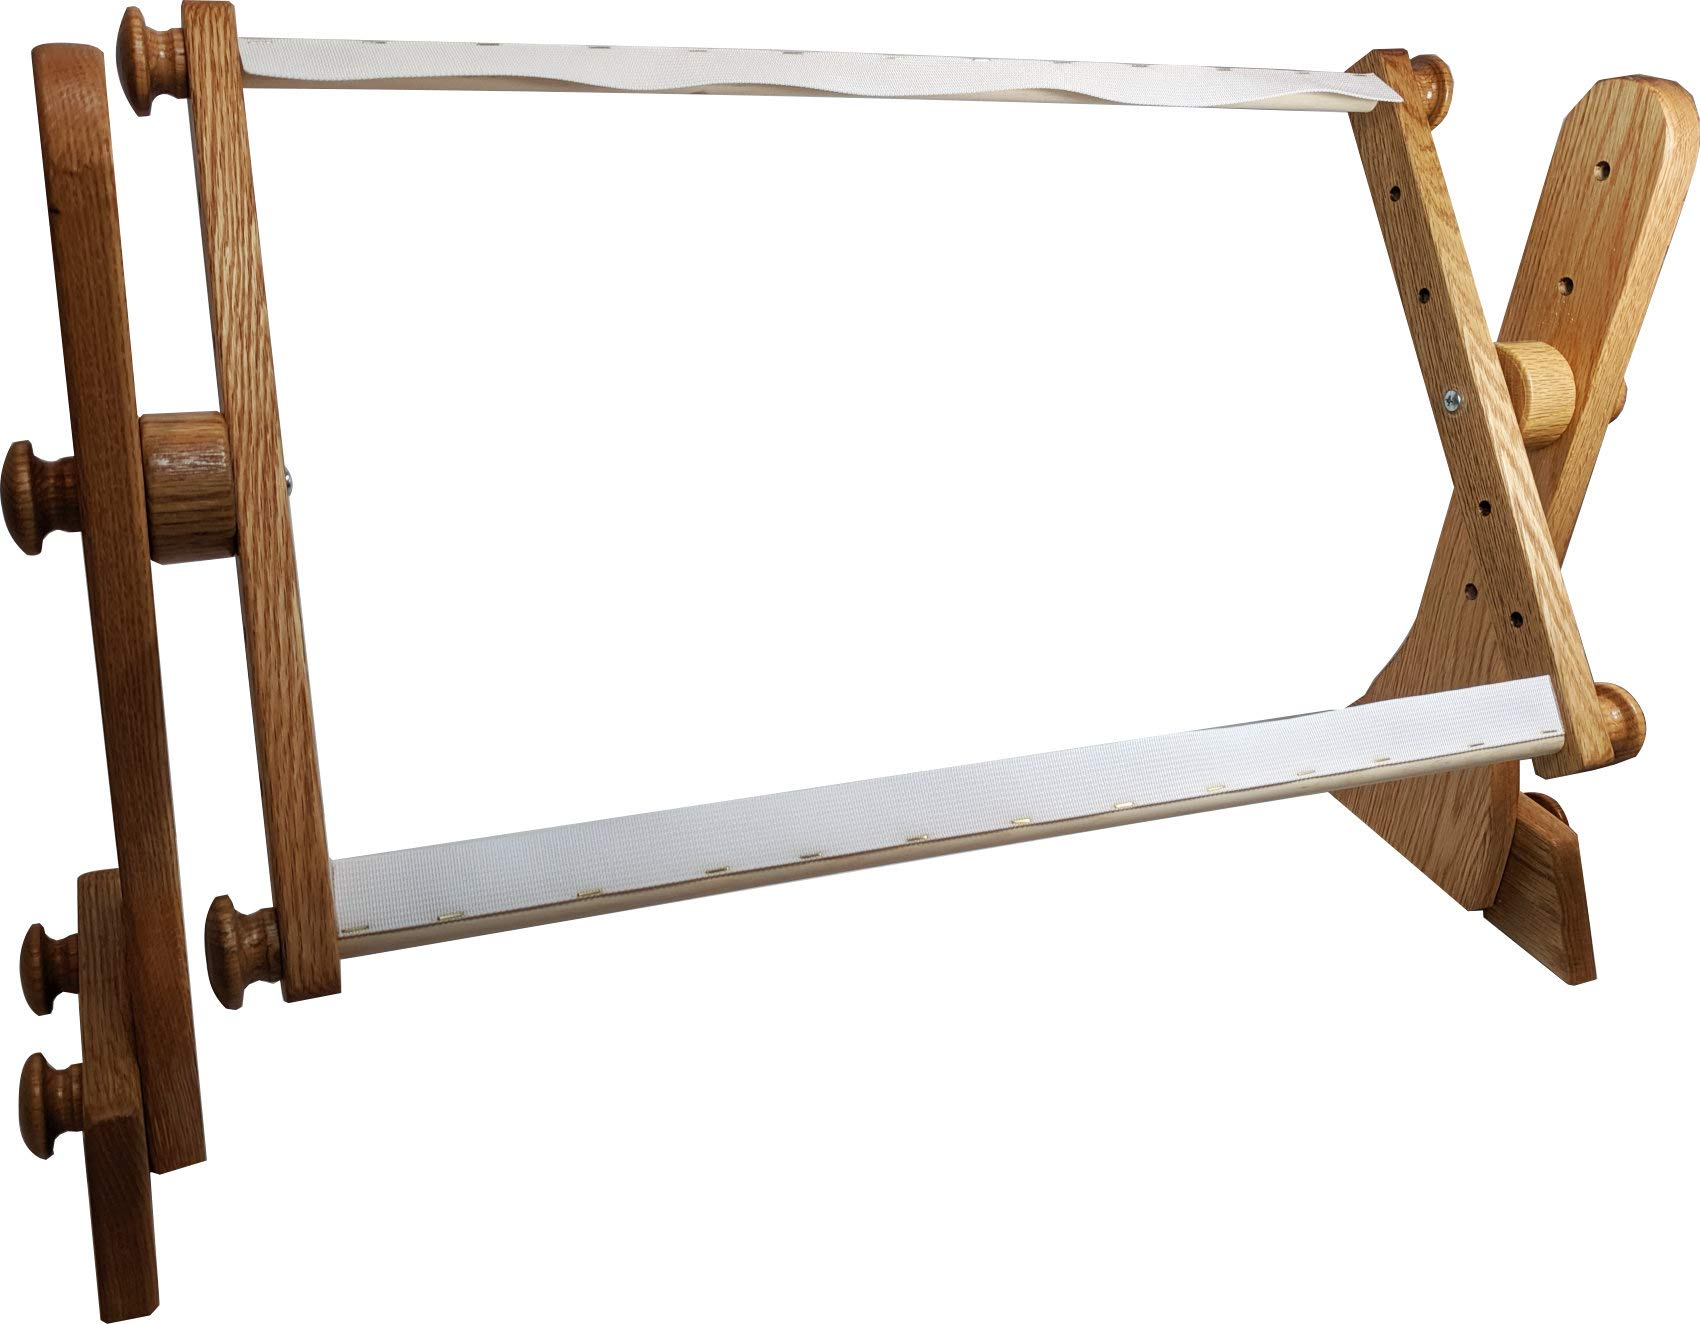 Tomorrow's Treasures Oak Lap or Tabletop Stand and Frame, Webbing Version by Tomorrow's Treasures